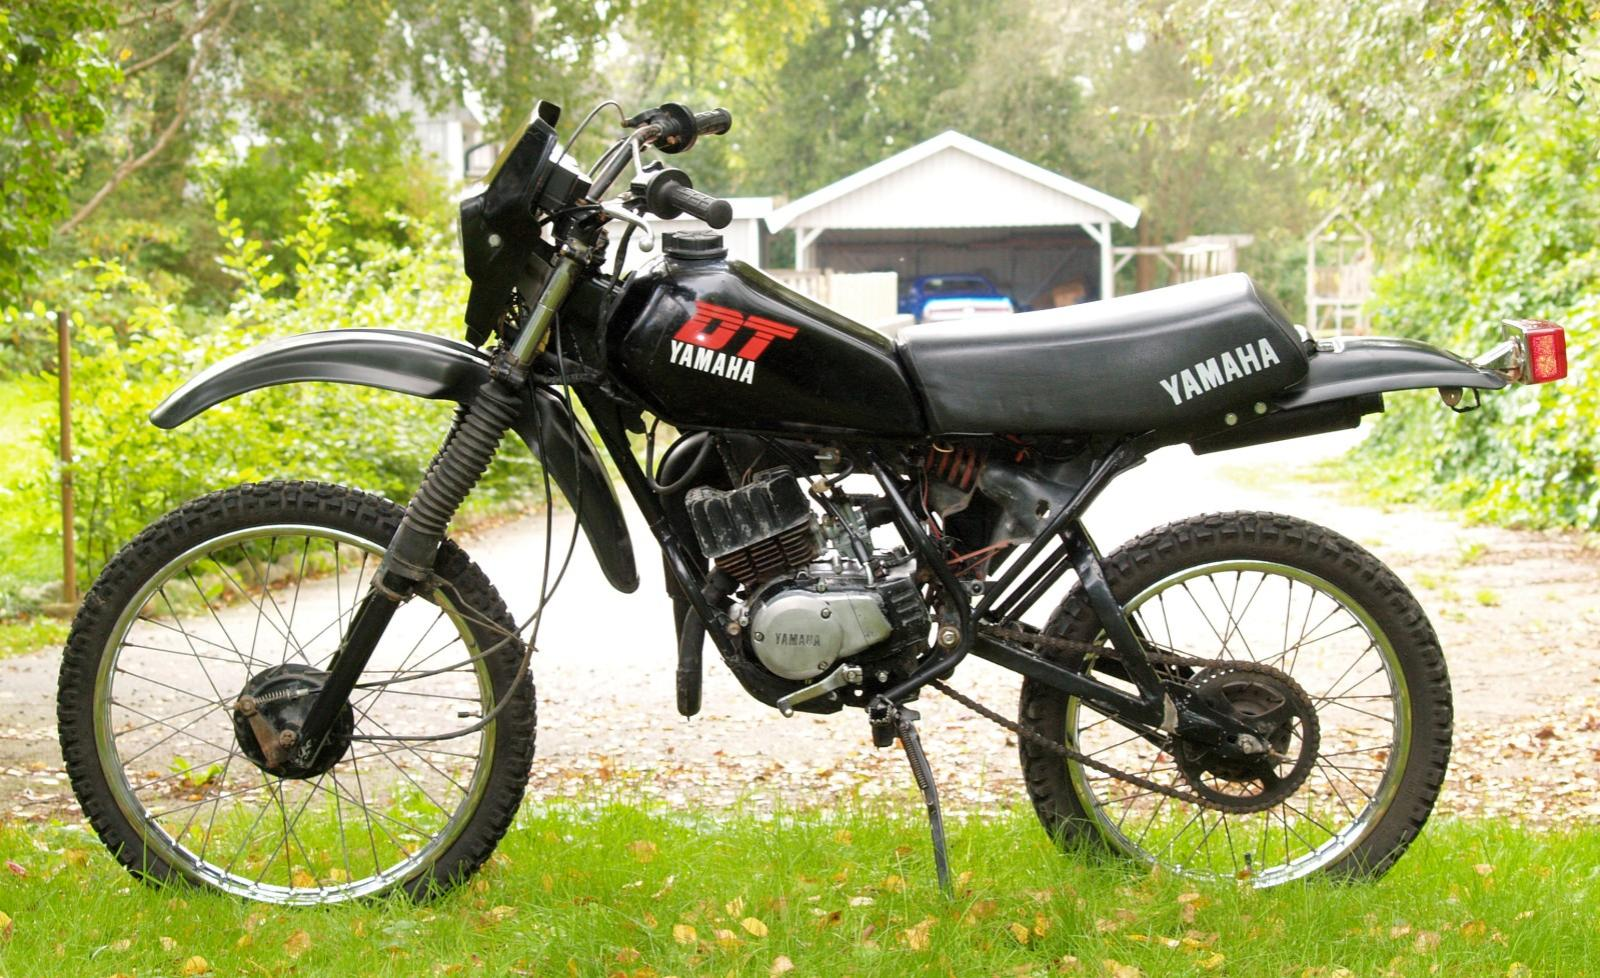 1983 yamaha dt 50 mx moto zombdrive com. Black Bedroom Furniture Sets. Home Design Ideas